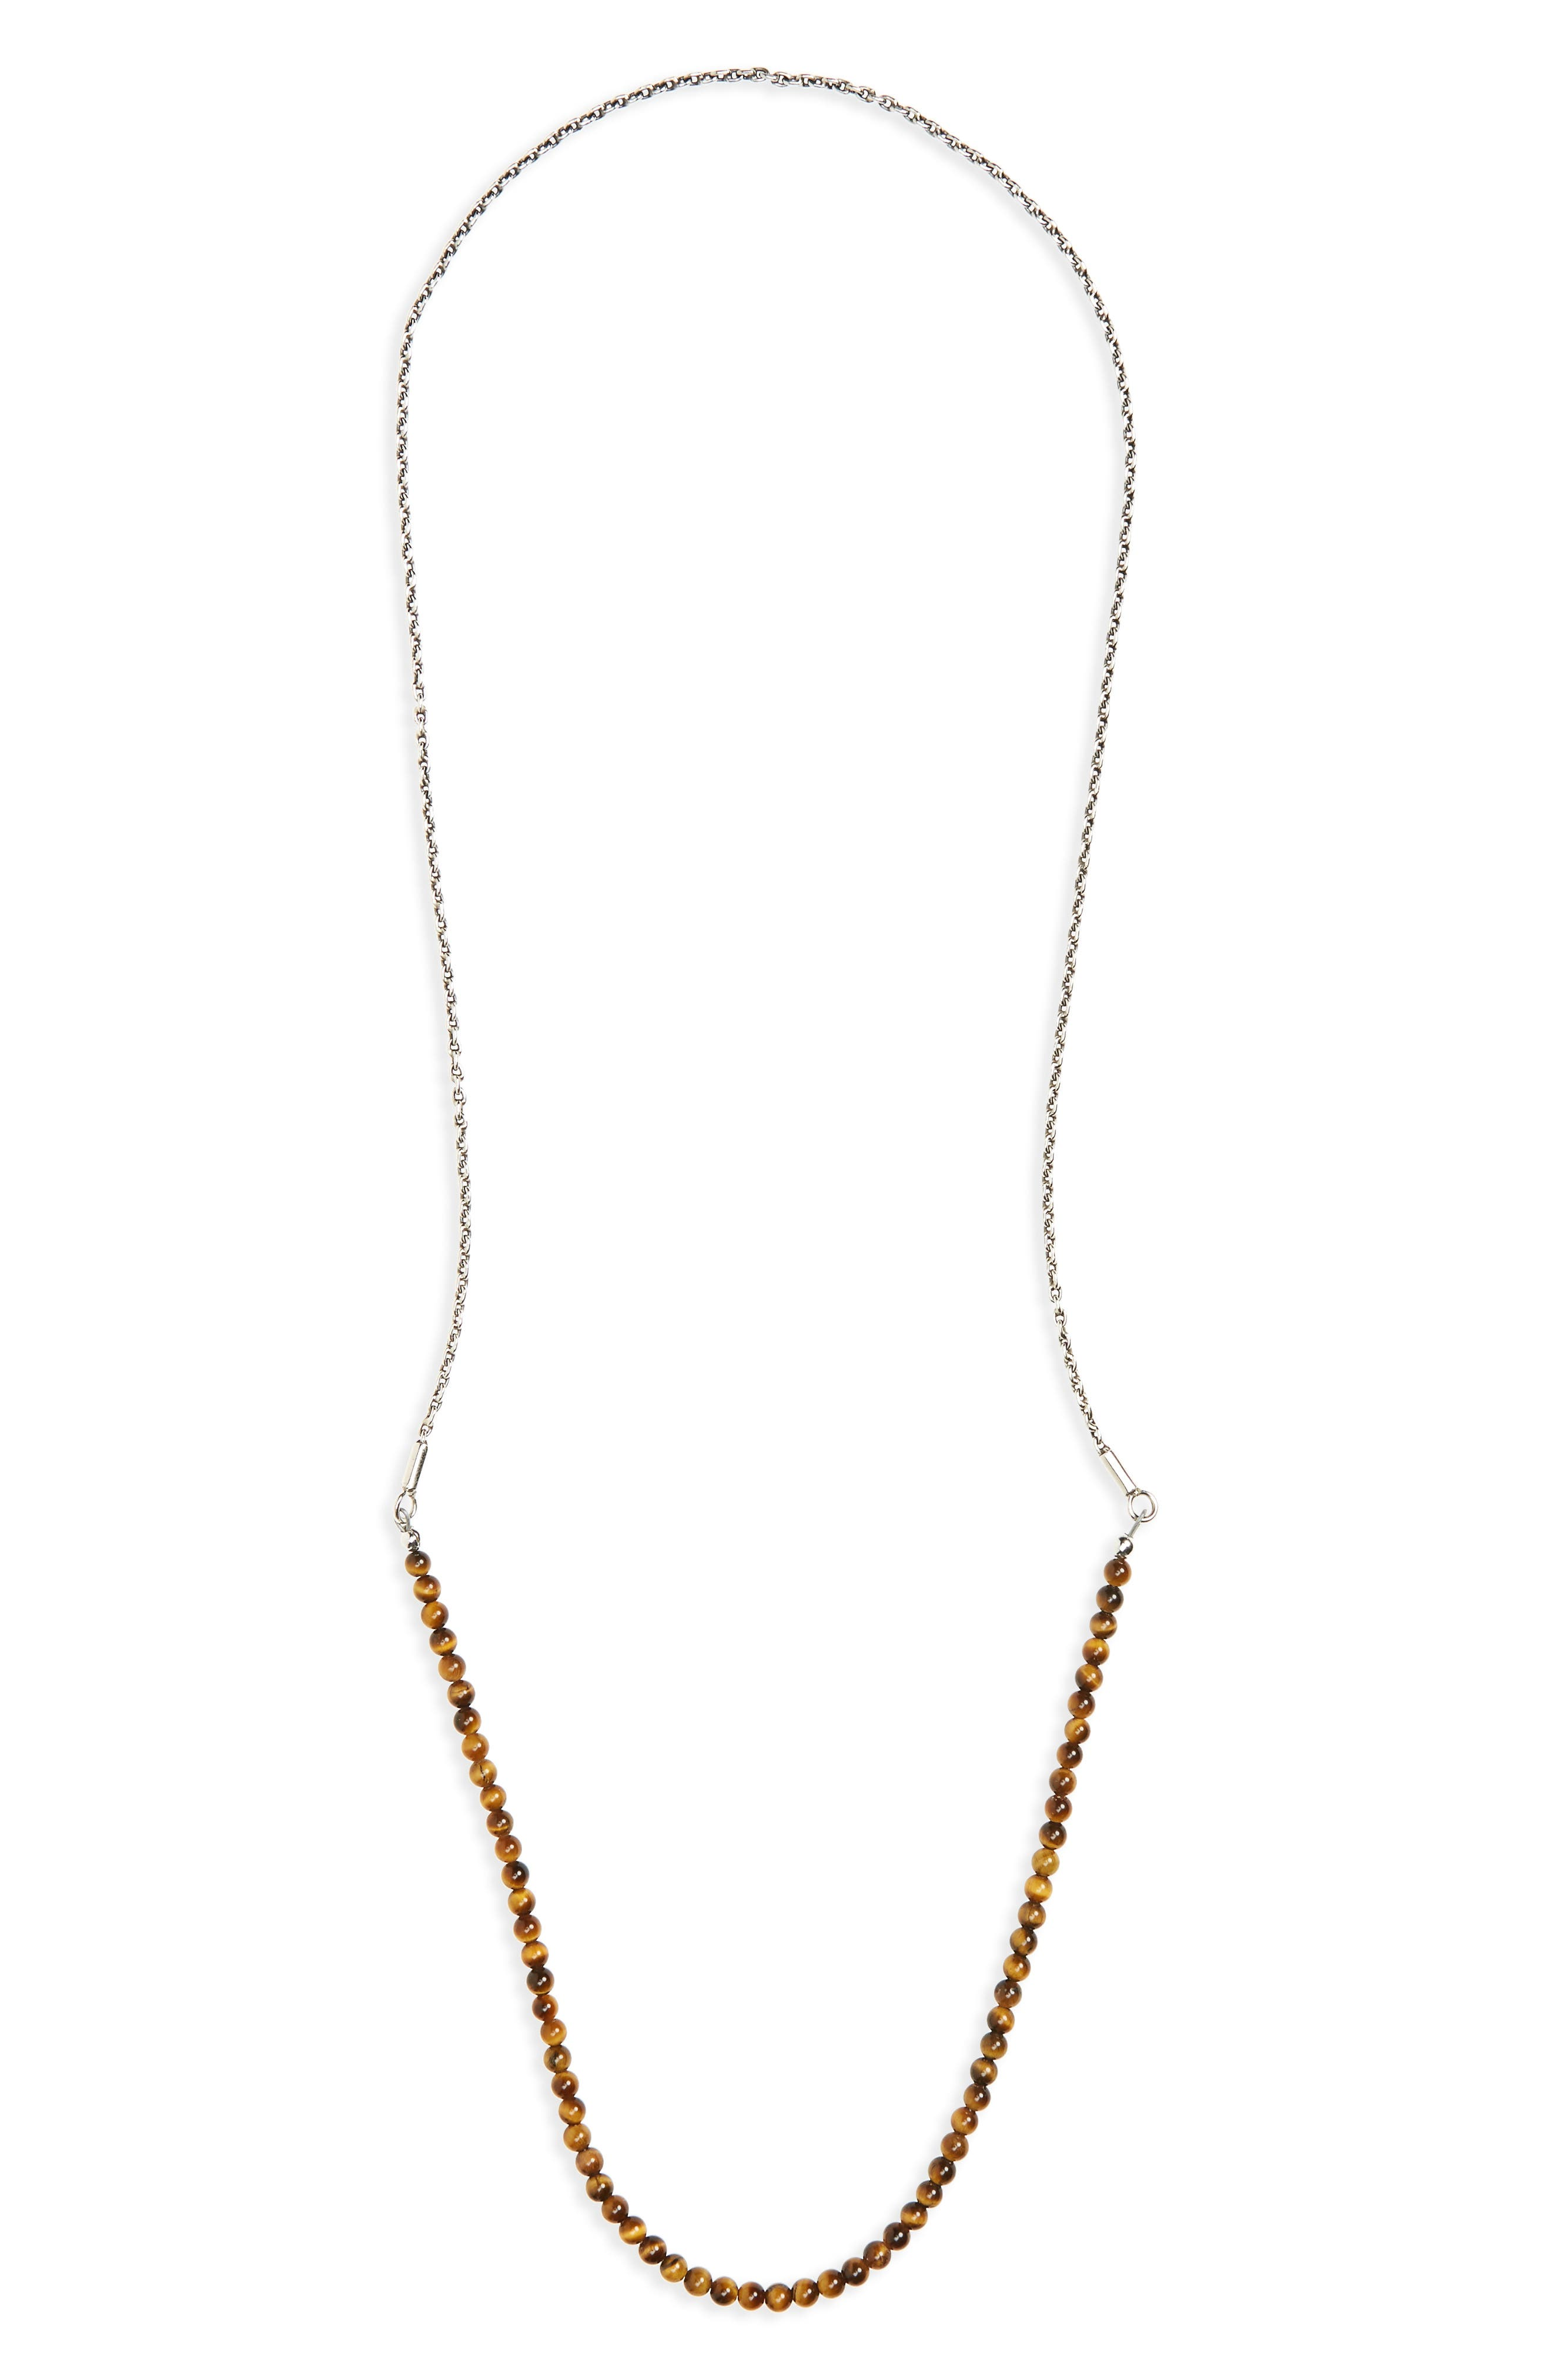 Main Image - Caputo & Co. Stone & Sterling Silver Necklace